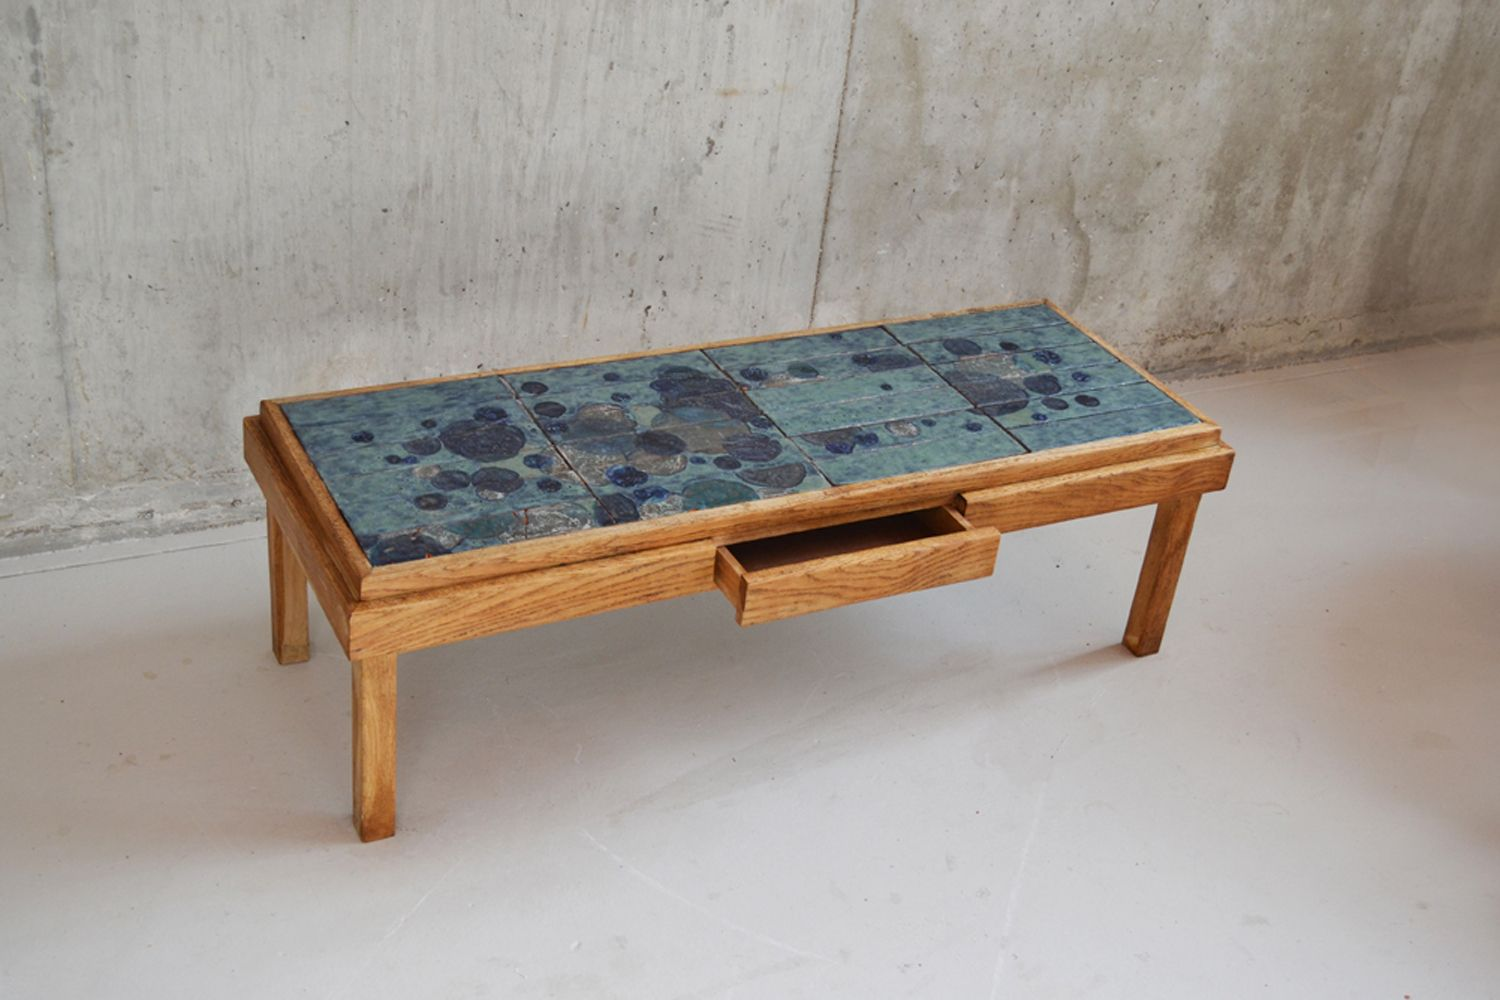 A very attractive coffee table with illustrated ceramic tiled top a very attractive coffee table with illustrated ceramic tiled top unusually this table has dailygadgetfo Gallery